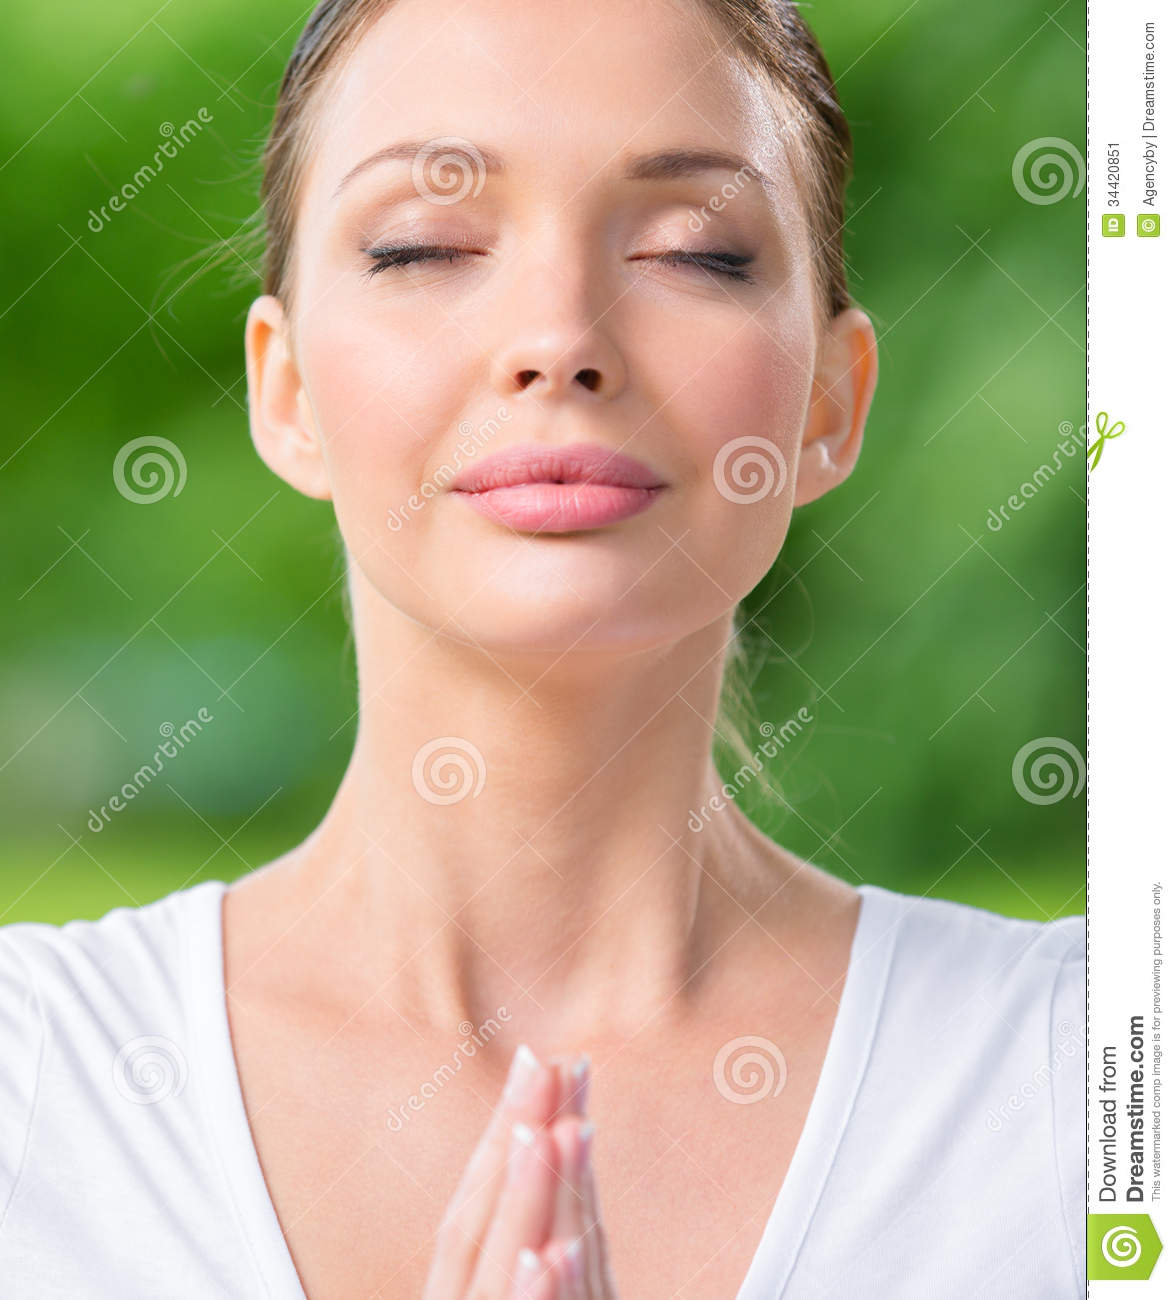 Close Up Of Woman With Closed Eyes Prayer Gesturing Stock